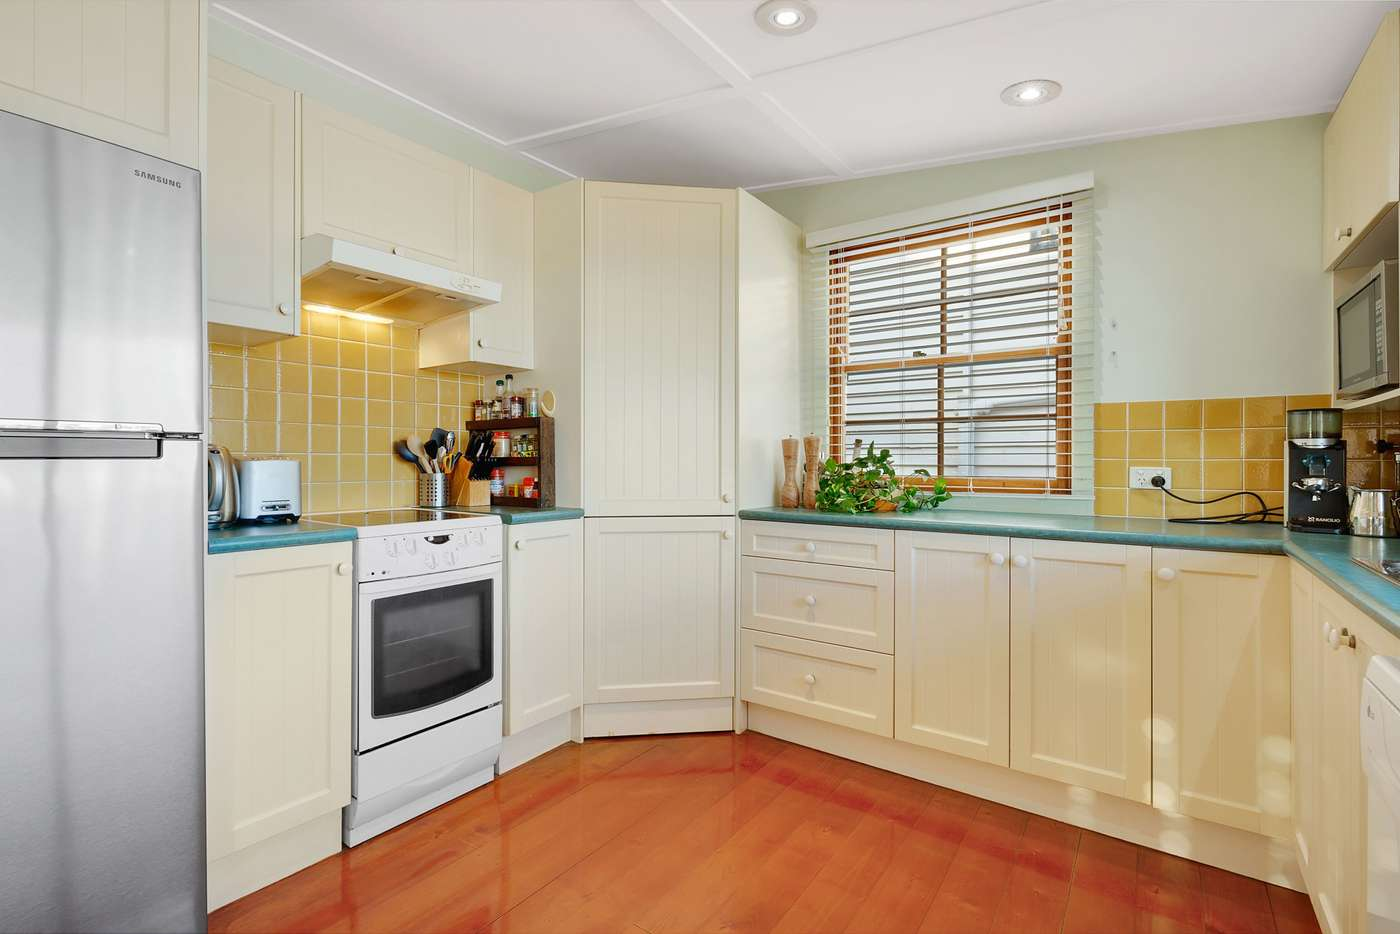 Sixth view of Homely house listing, 64 Mountjoy Street, Petrie Terrace QLD 4000